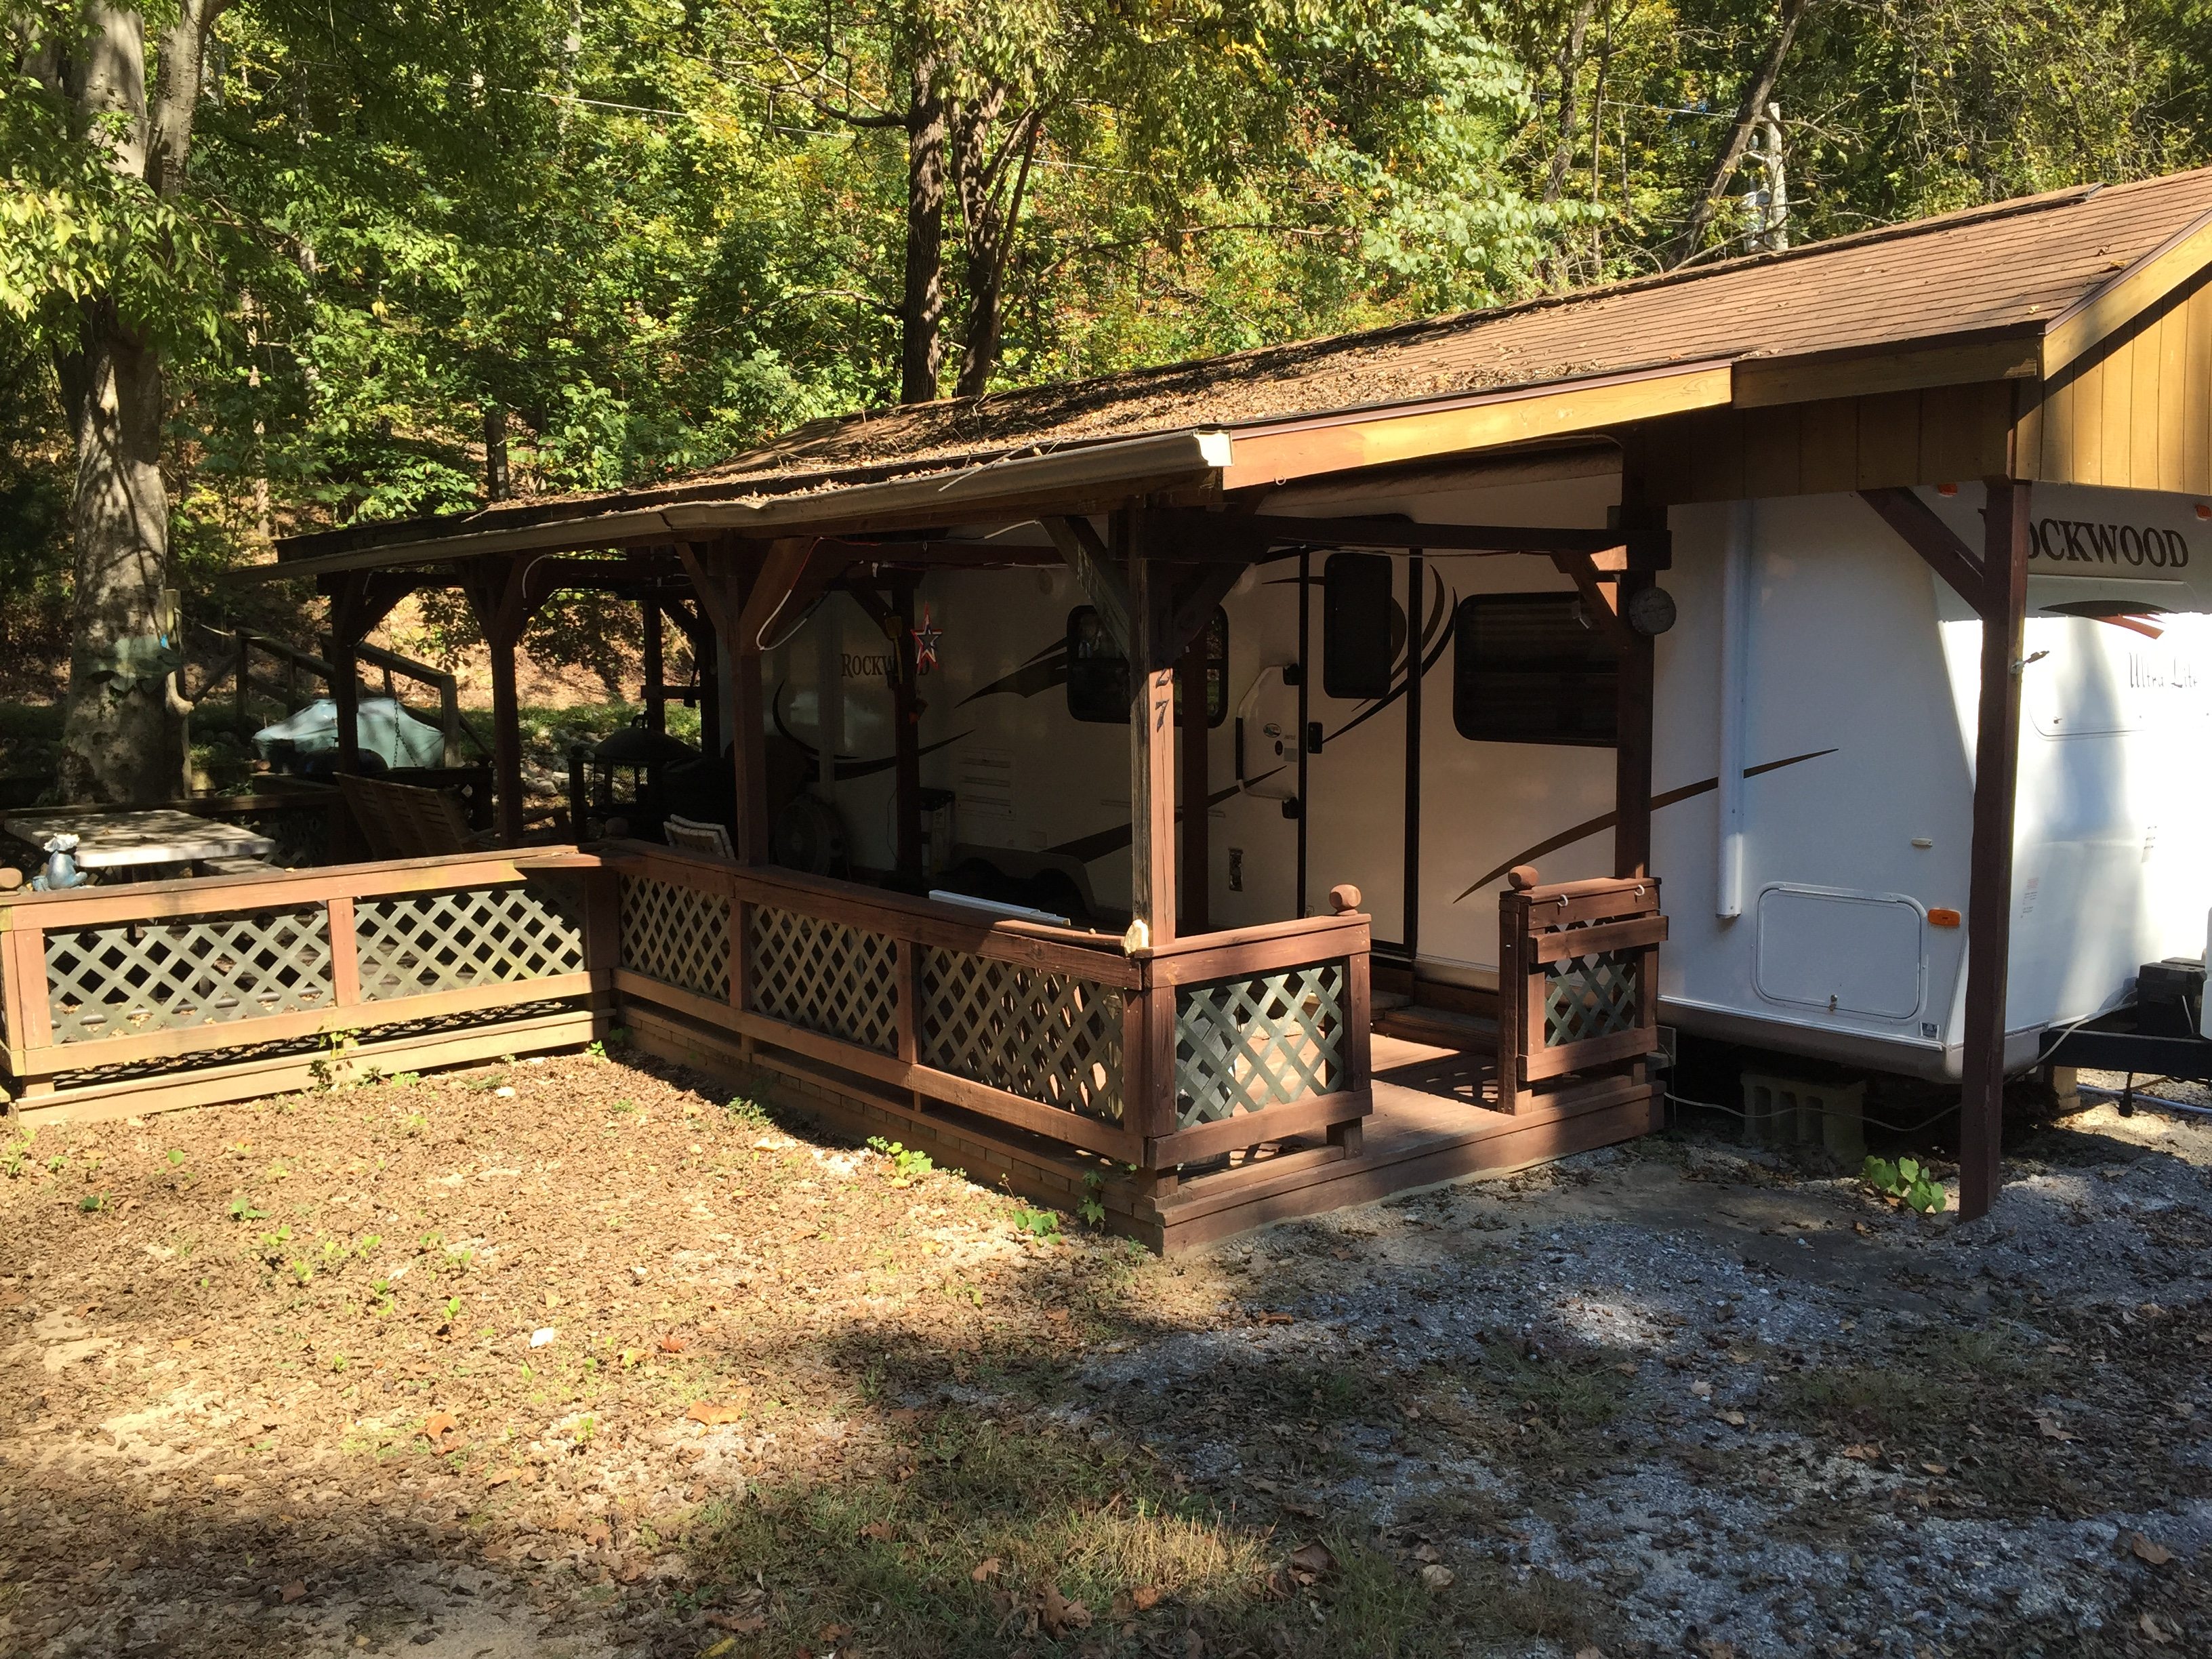 duruxx is murray surrounds best one that of cabins s coolest to do features cabin and things park state rentals about entire lake boasts many where the wheres